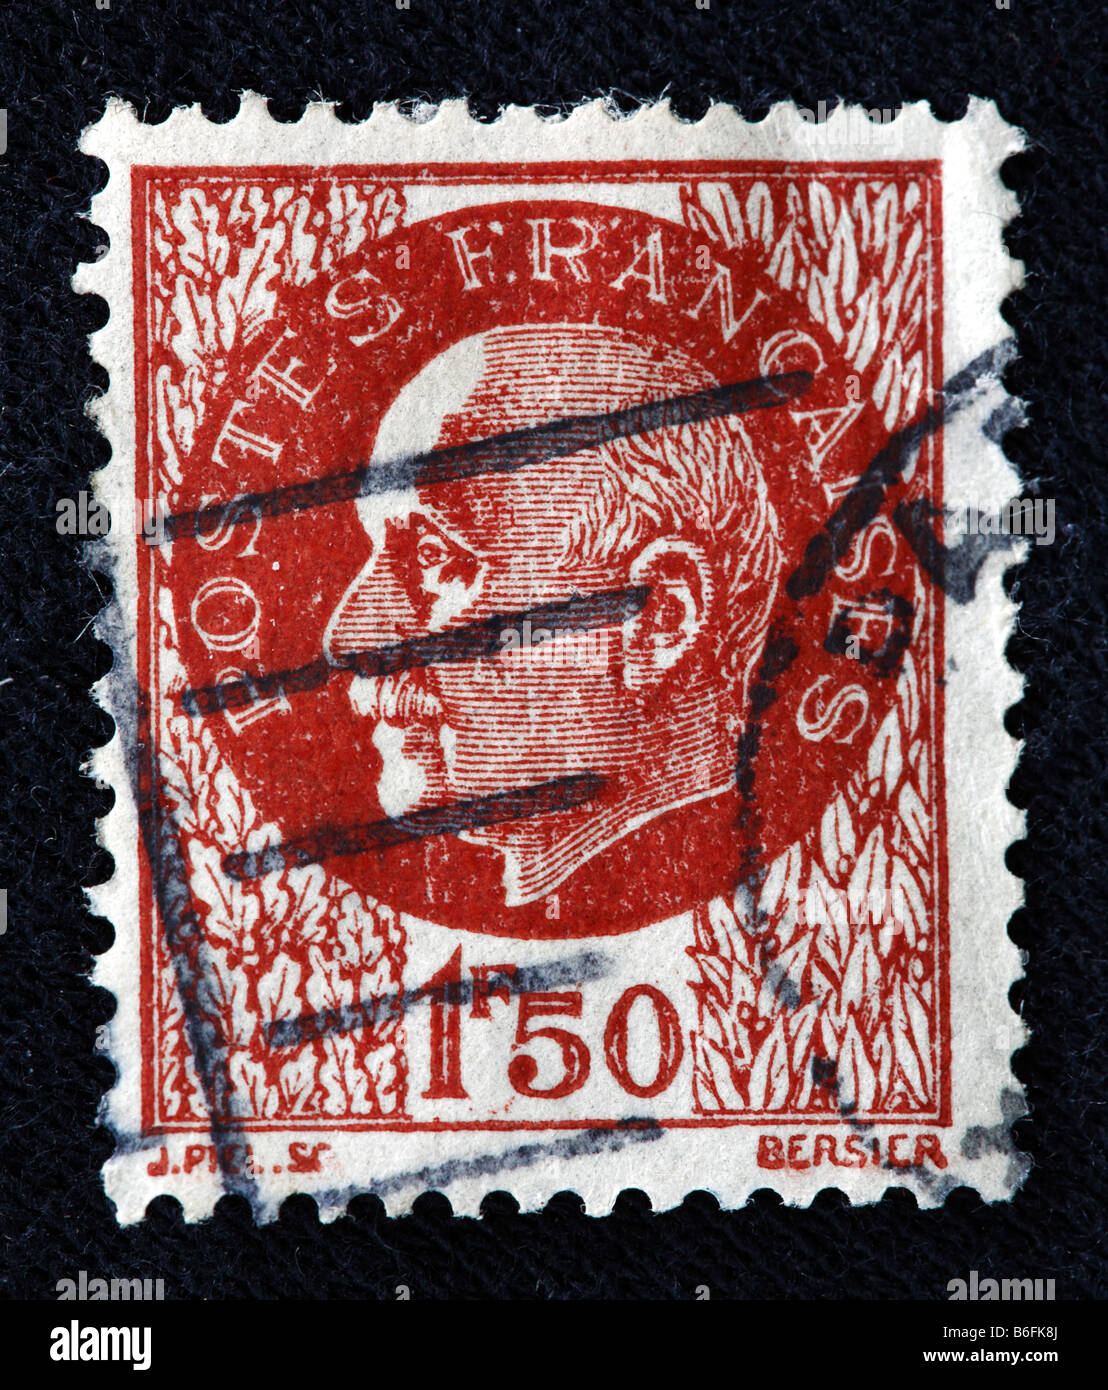 Marshal Philippe Petain, Head of State of Vichy France (1940-1944), postage stamp, France - Stock Image